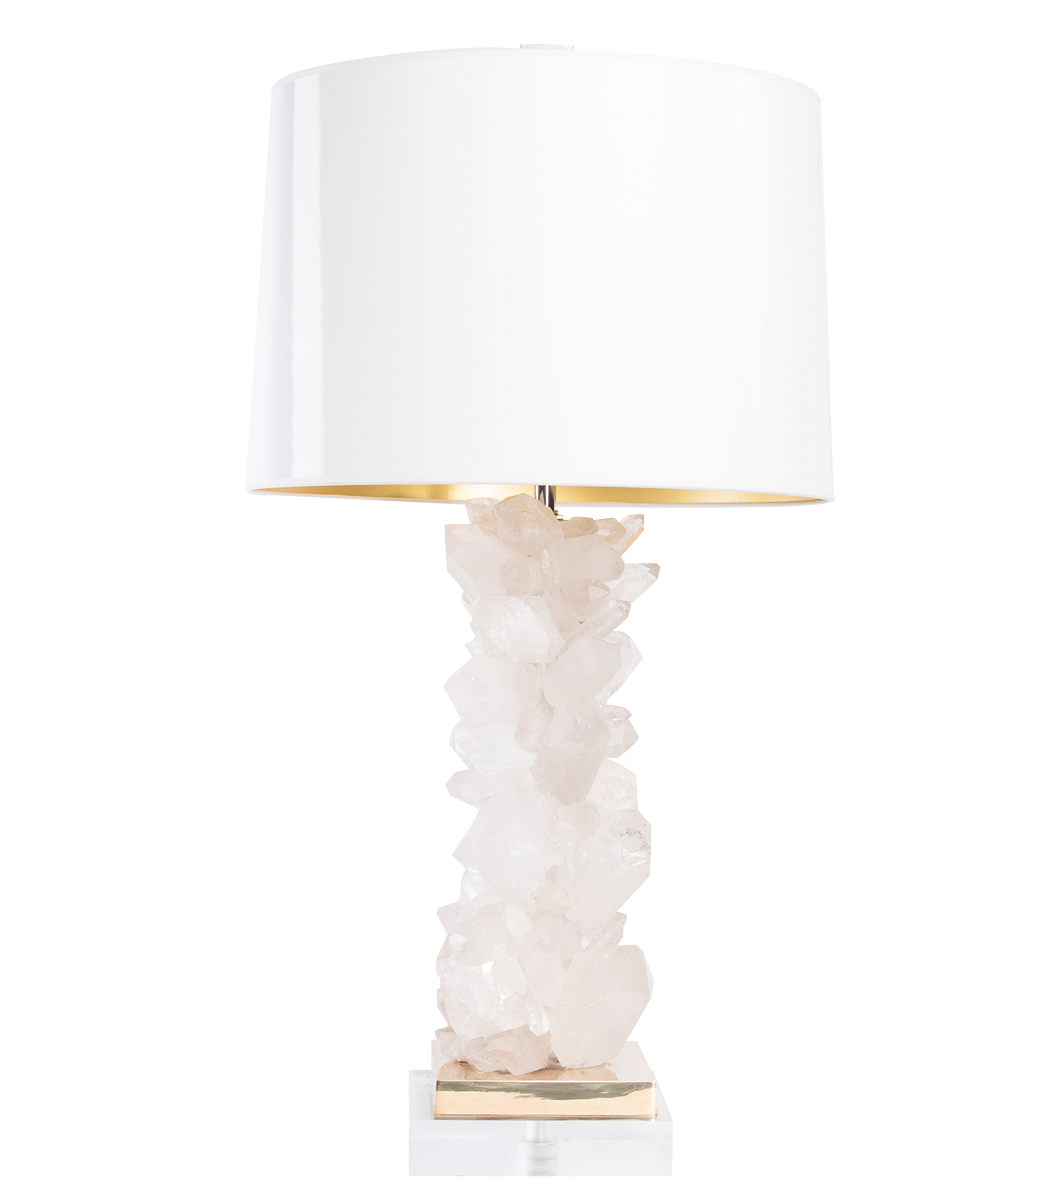 Lamp Is Handcrafted Using Quartz Crystal Points On A Metal Riser With An Acrylic Base Roximately 29 H 7 Square Available